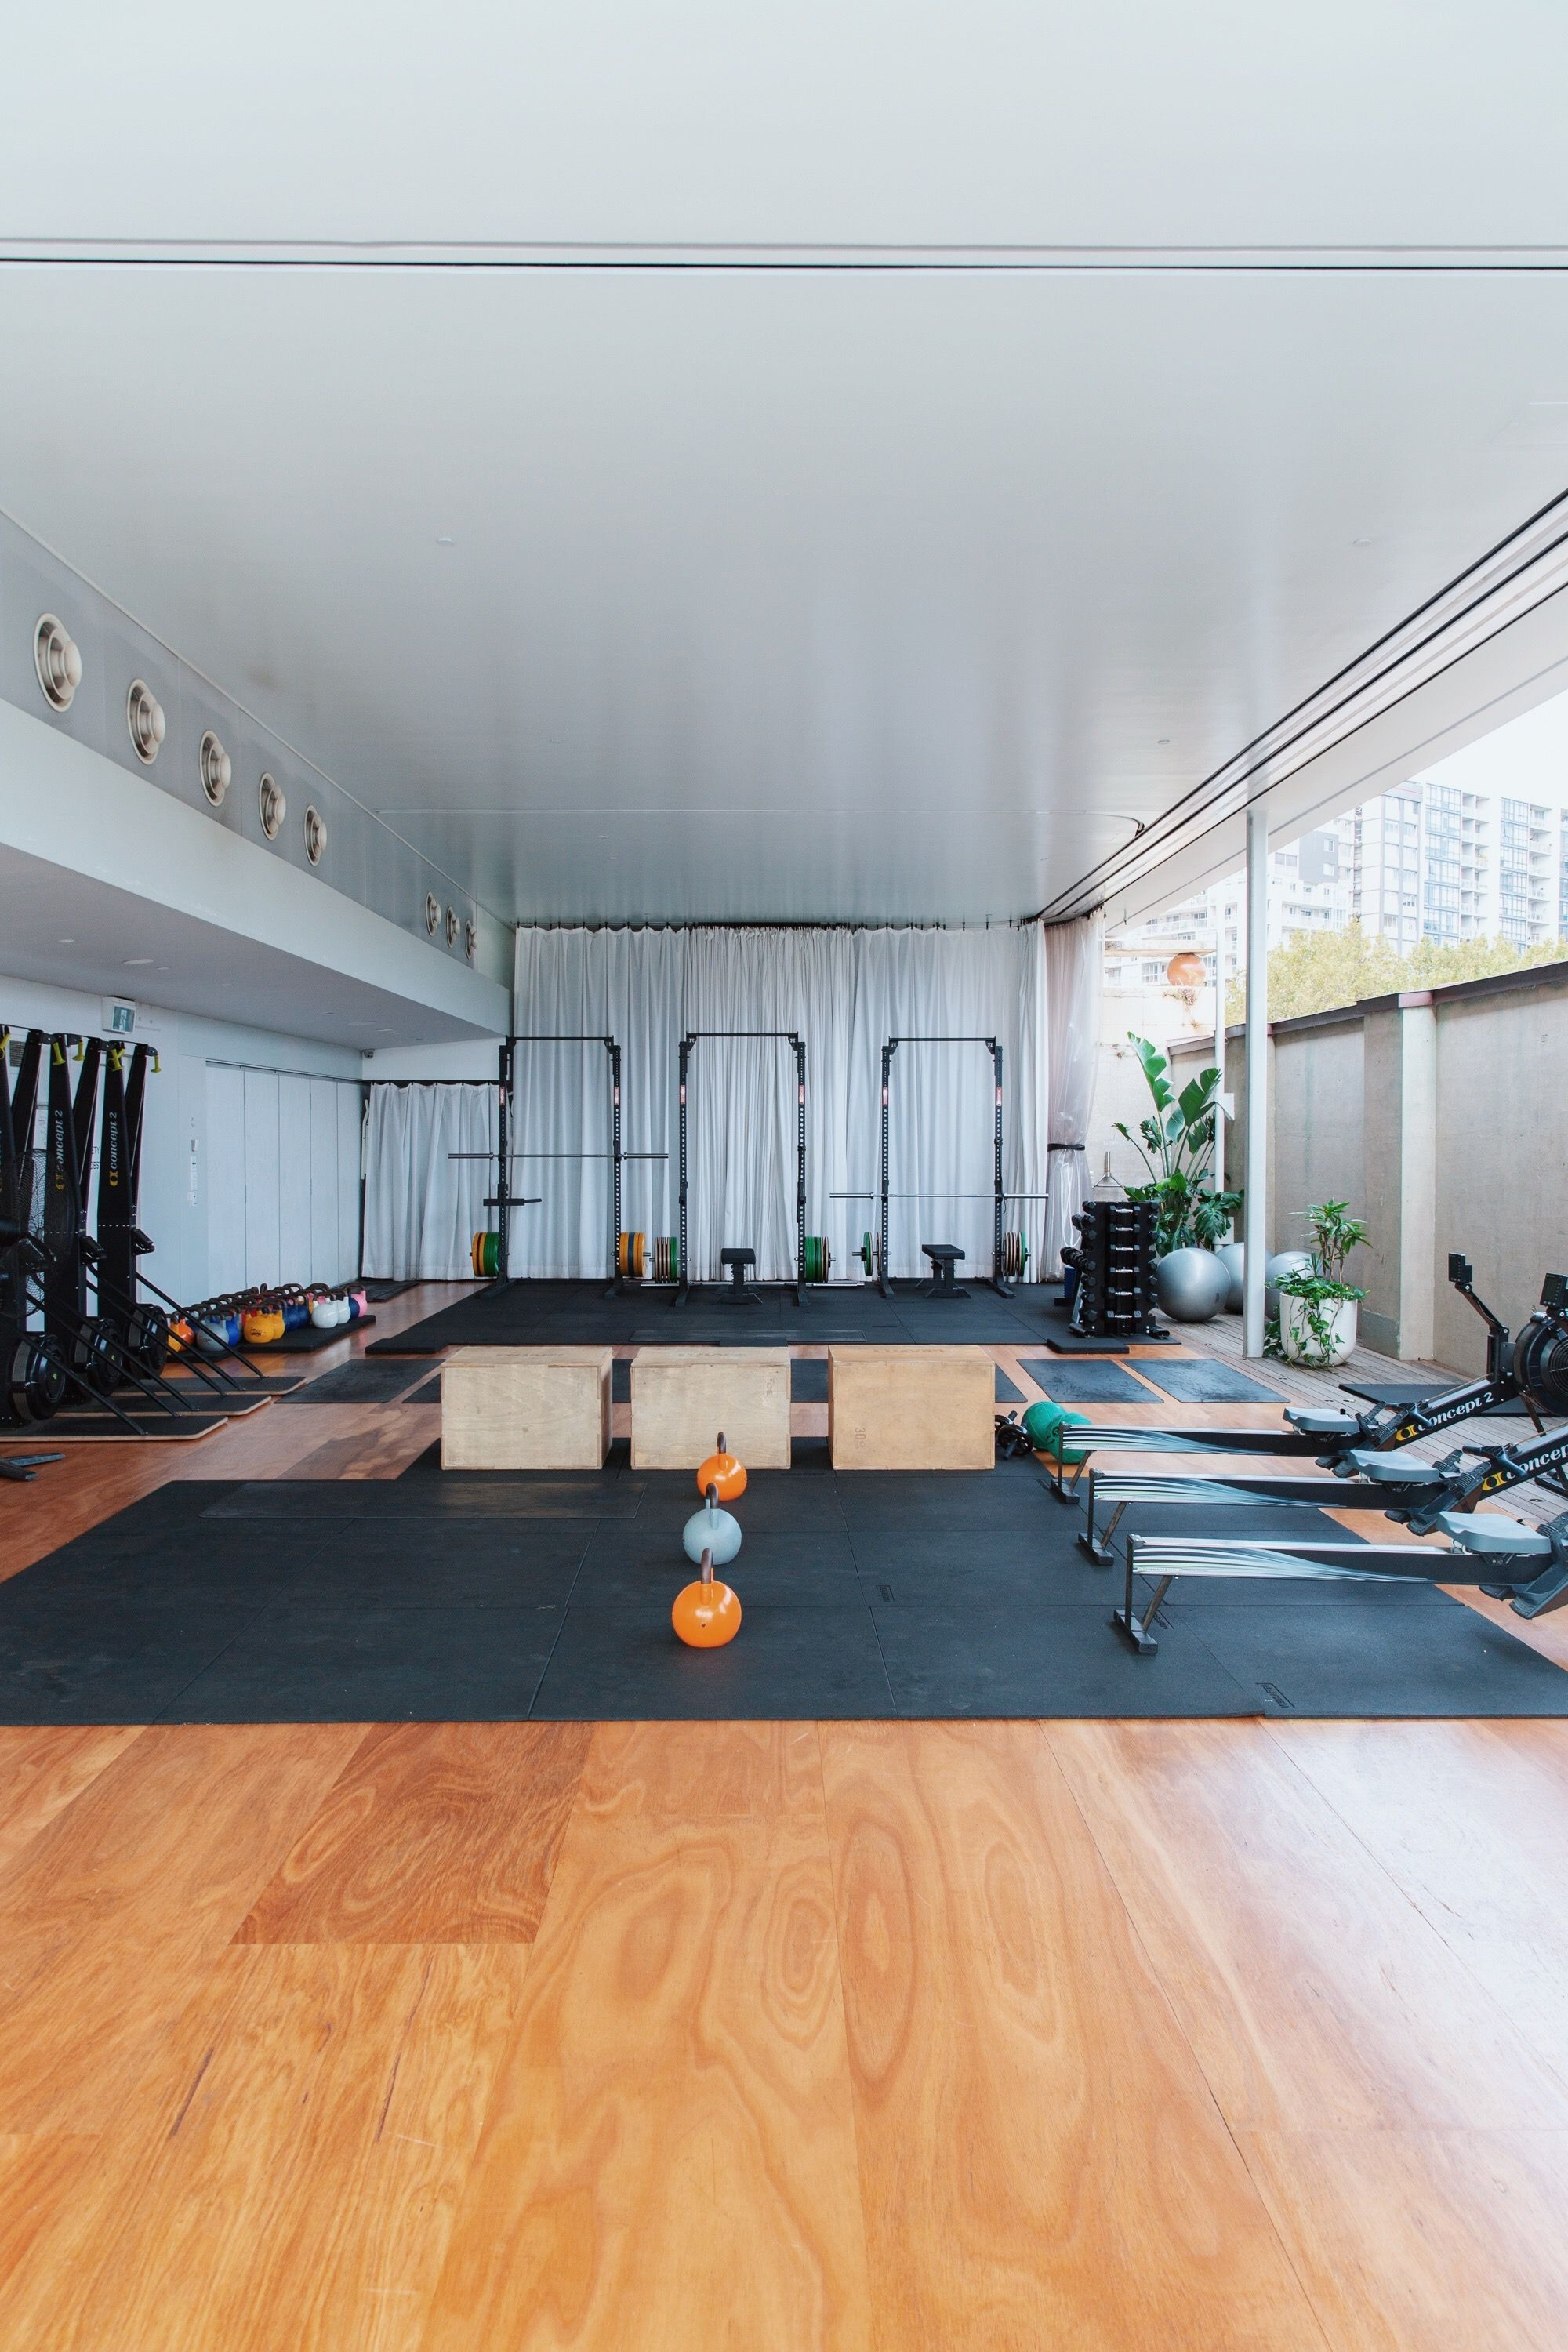 Sunset Strip Luxury Residence 9133 Oriole Way Los Angeles Ca Luxury Homegyms Home Gym Decor Gym Room At Home Home Gym Design